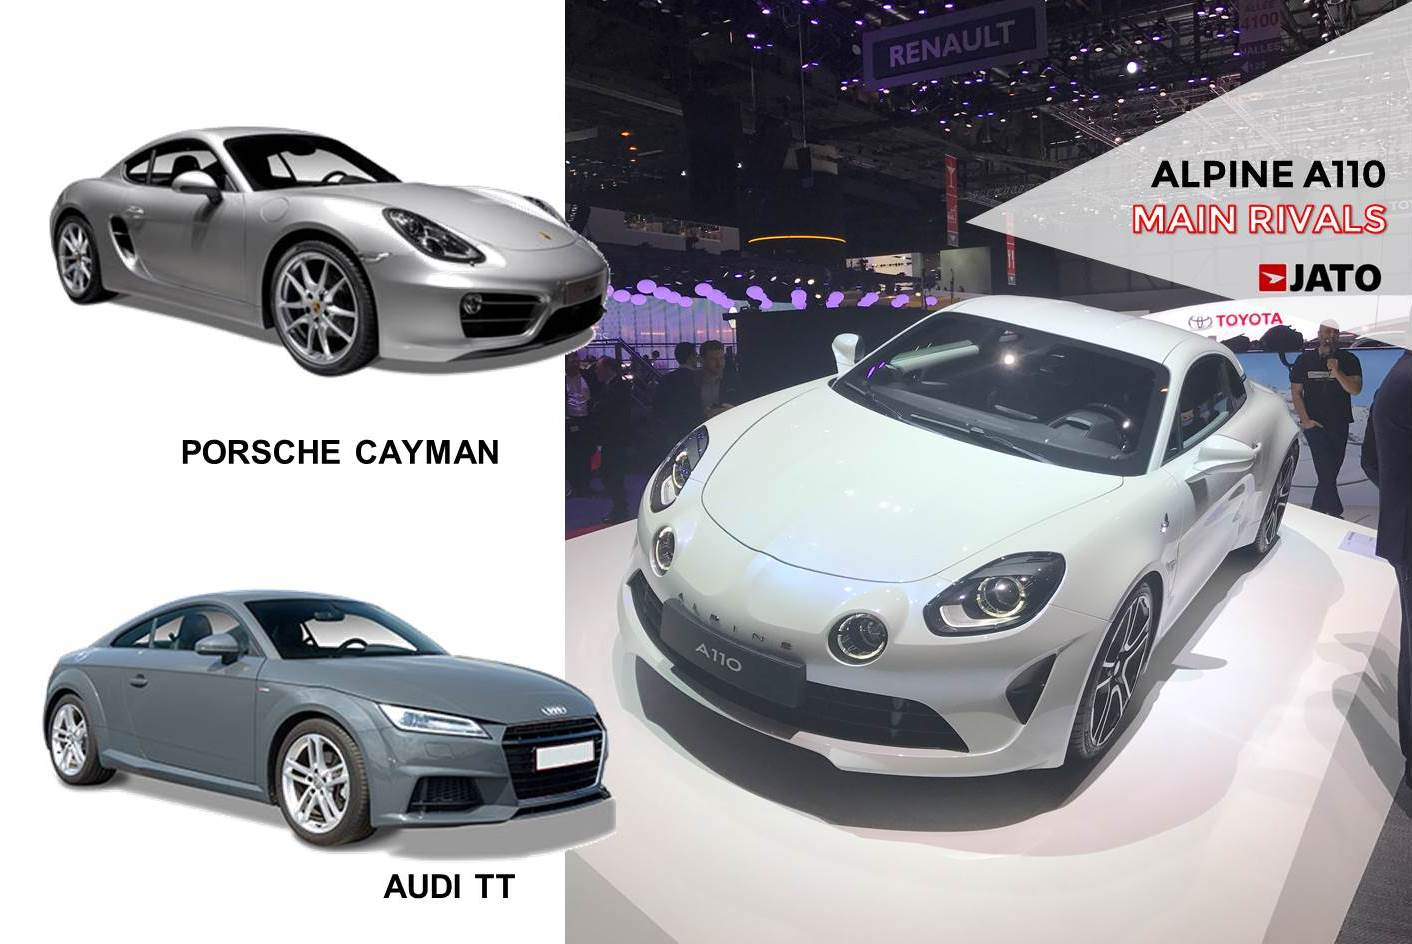 Renault points at the midsize sporty segment reviving the Alpine brand. The A110 is set to rival with the Porsche Cayman and Audi TT, in a segment not only dominated by them (they controlled 45% of the segment registrations in 2016), but showing no signs of growth.